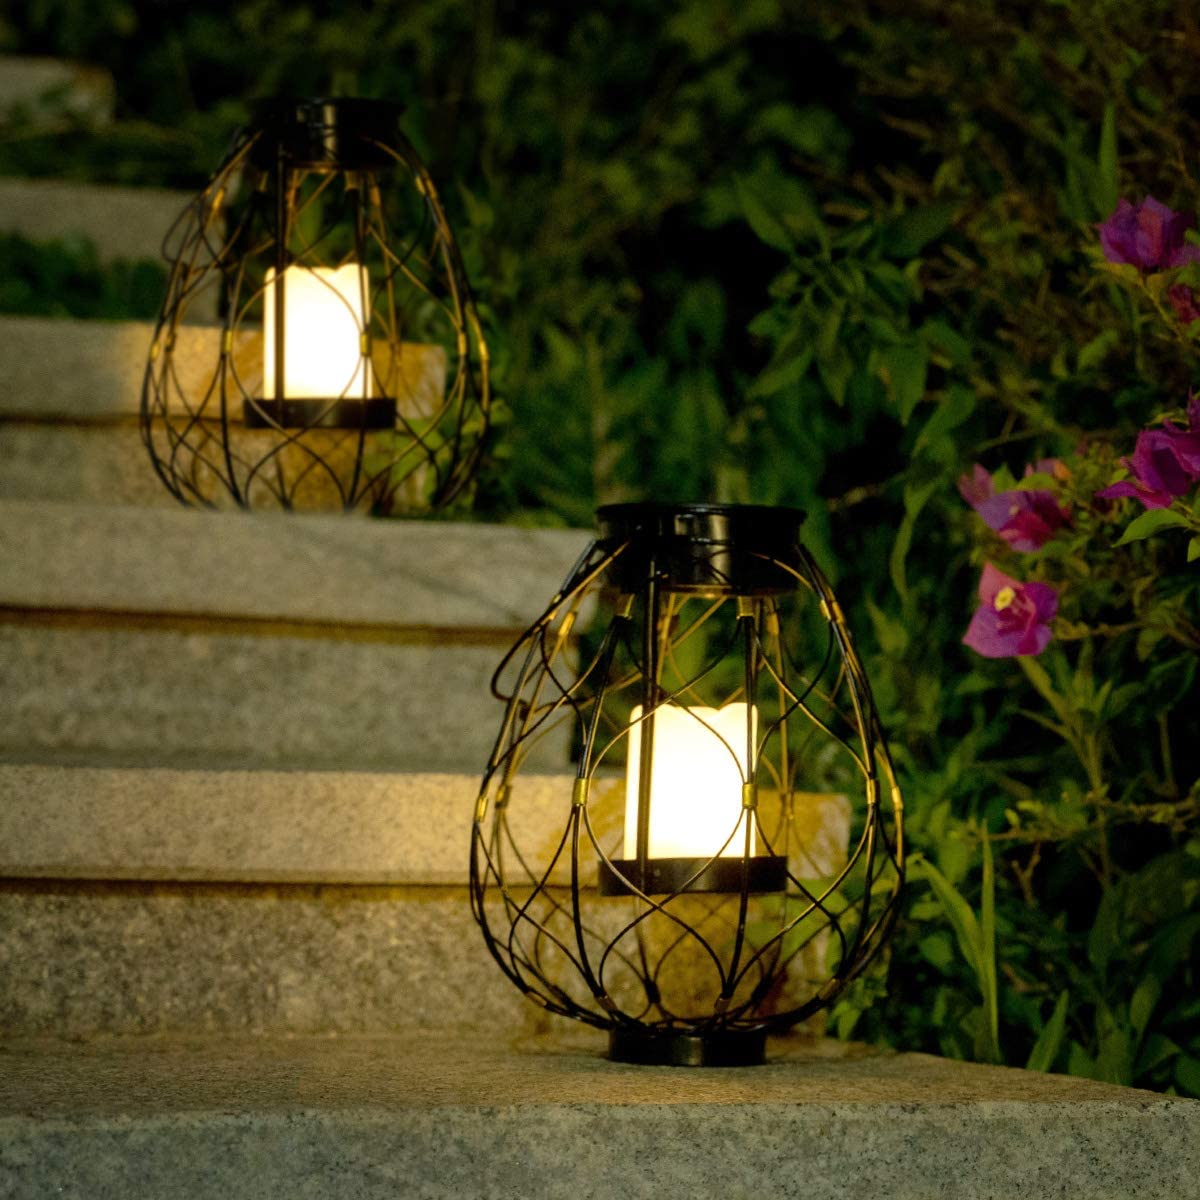 Solar Metal Lantern with Sherphad Hooks Outdoor Garden Hanging LED Lights Decoration for Garden Patio, Porch Yard